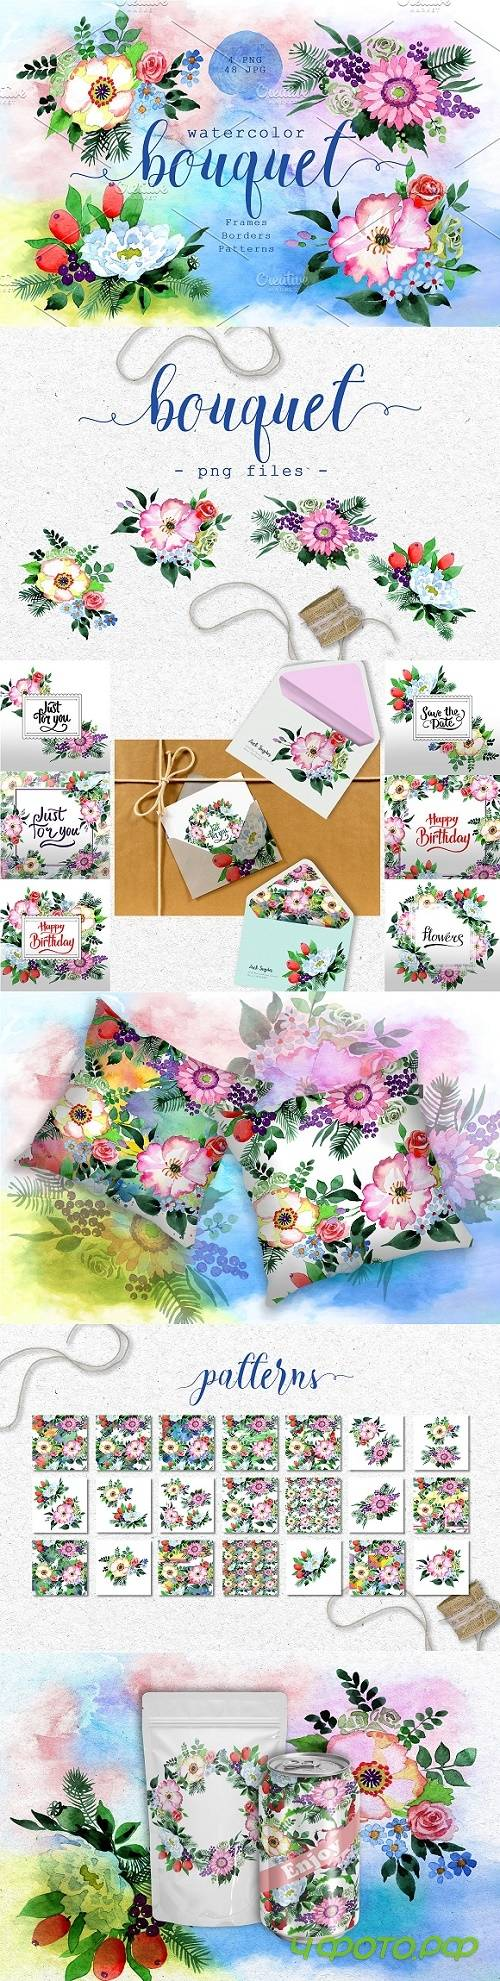 Four wonderful bouquet flowers PNG - 2891479